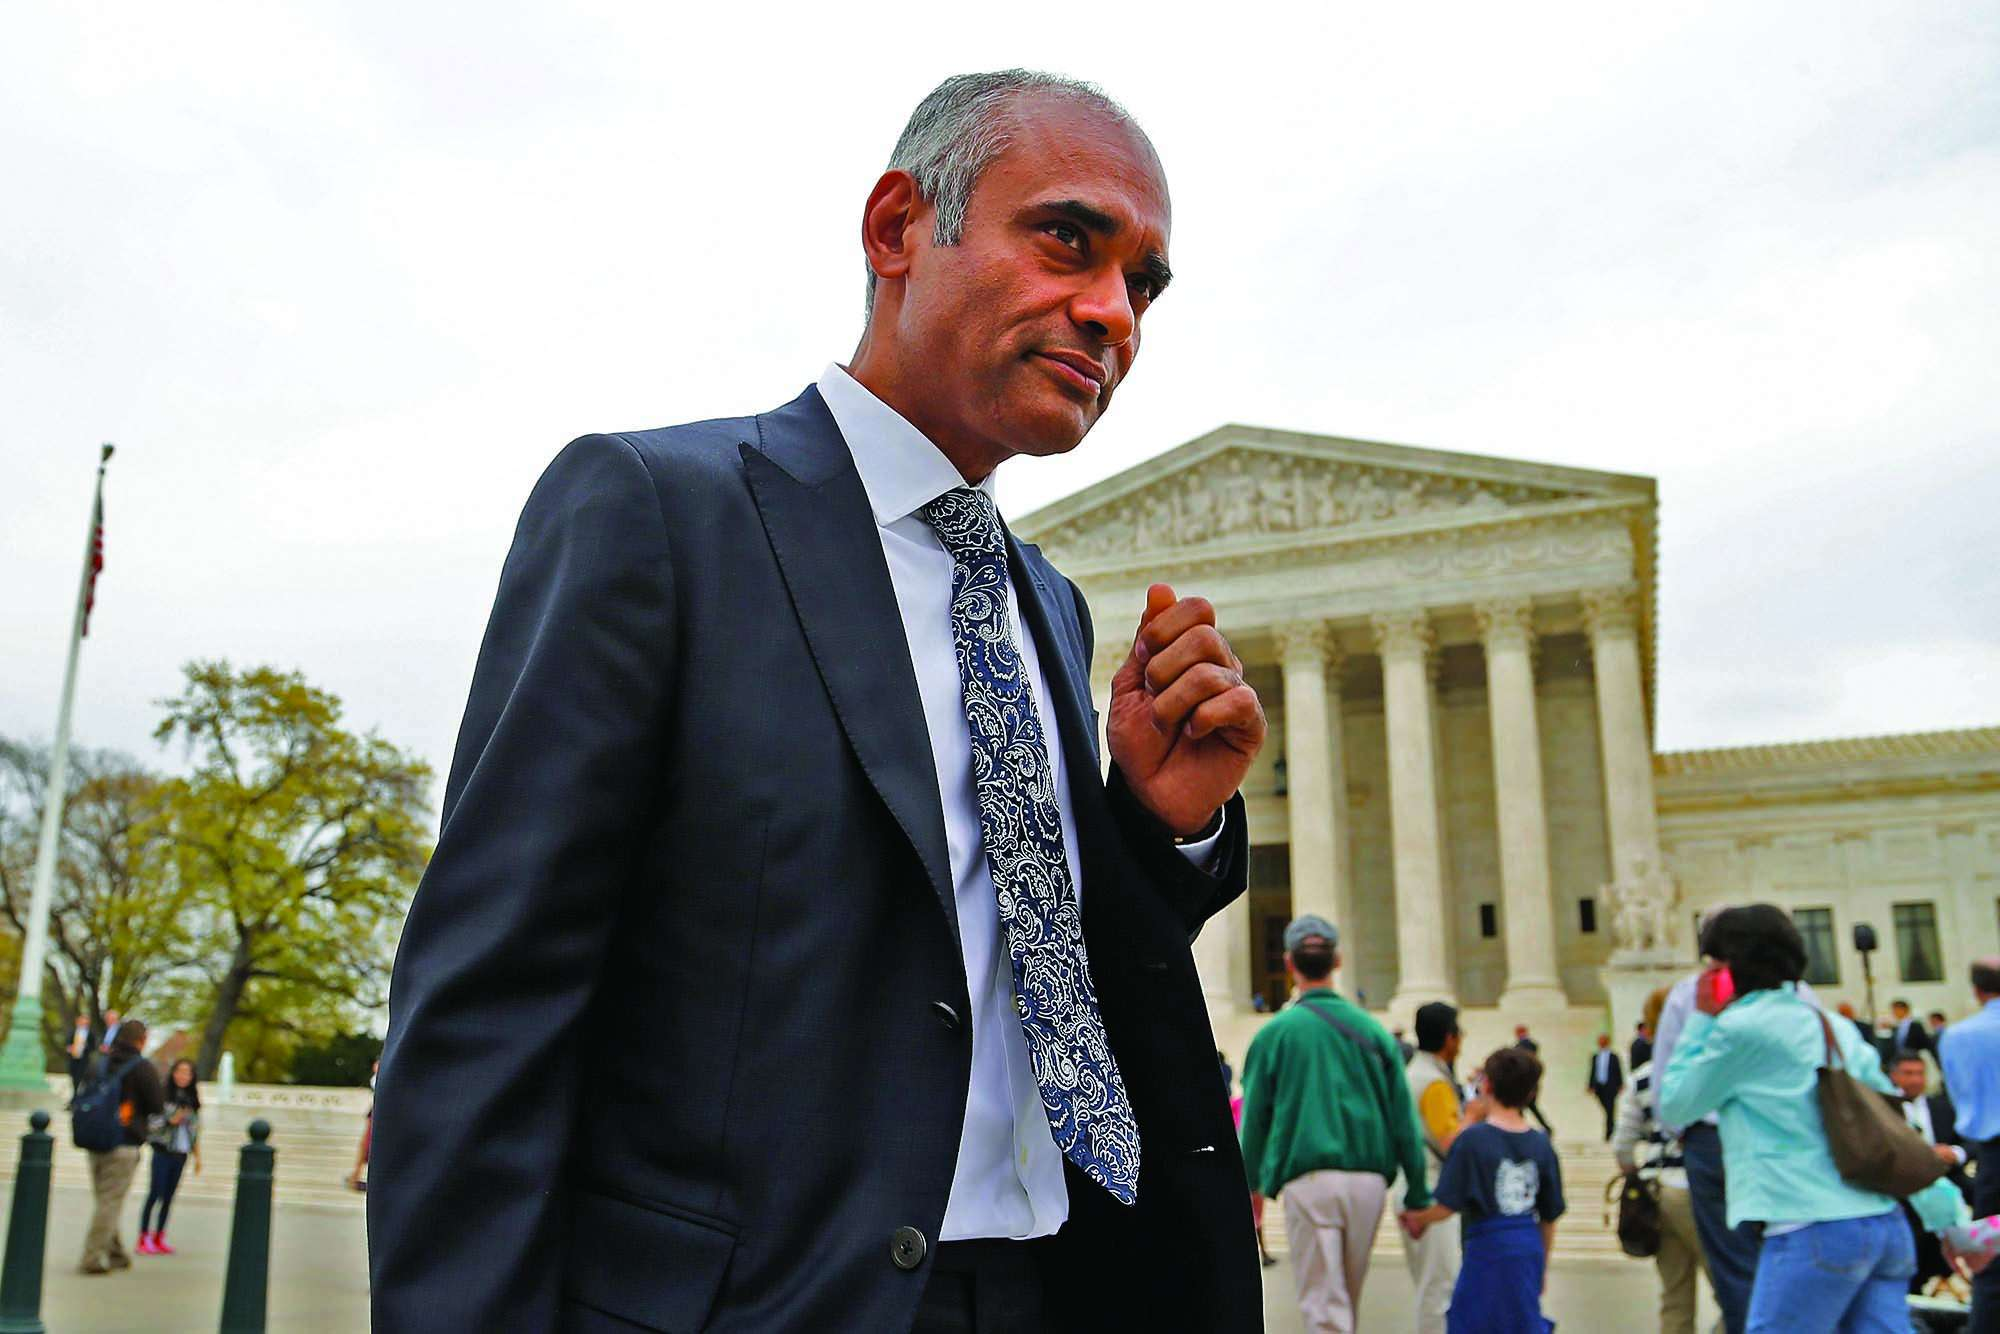 Chet Kanojia, CEO of Aereo, outside the Supreme Court.